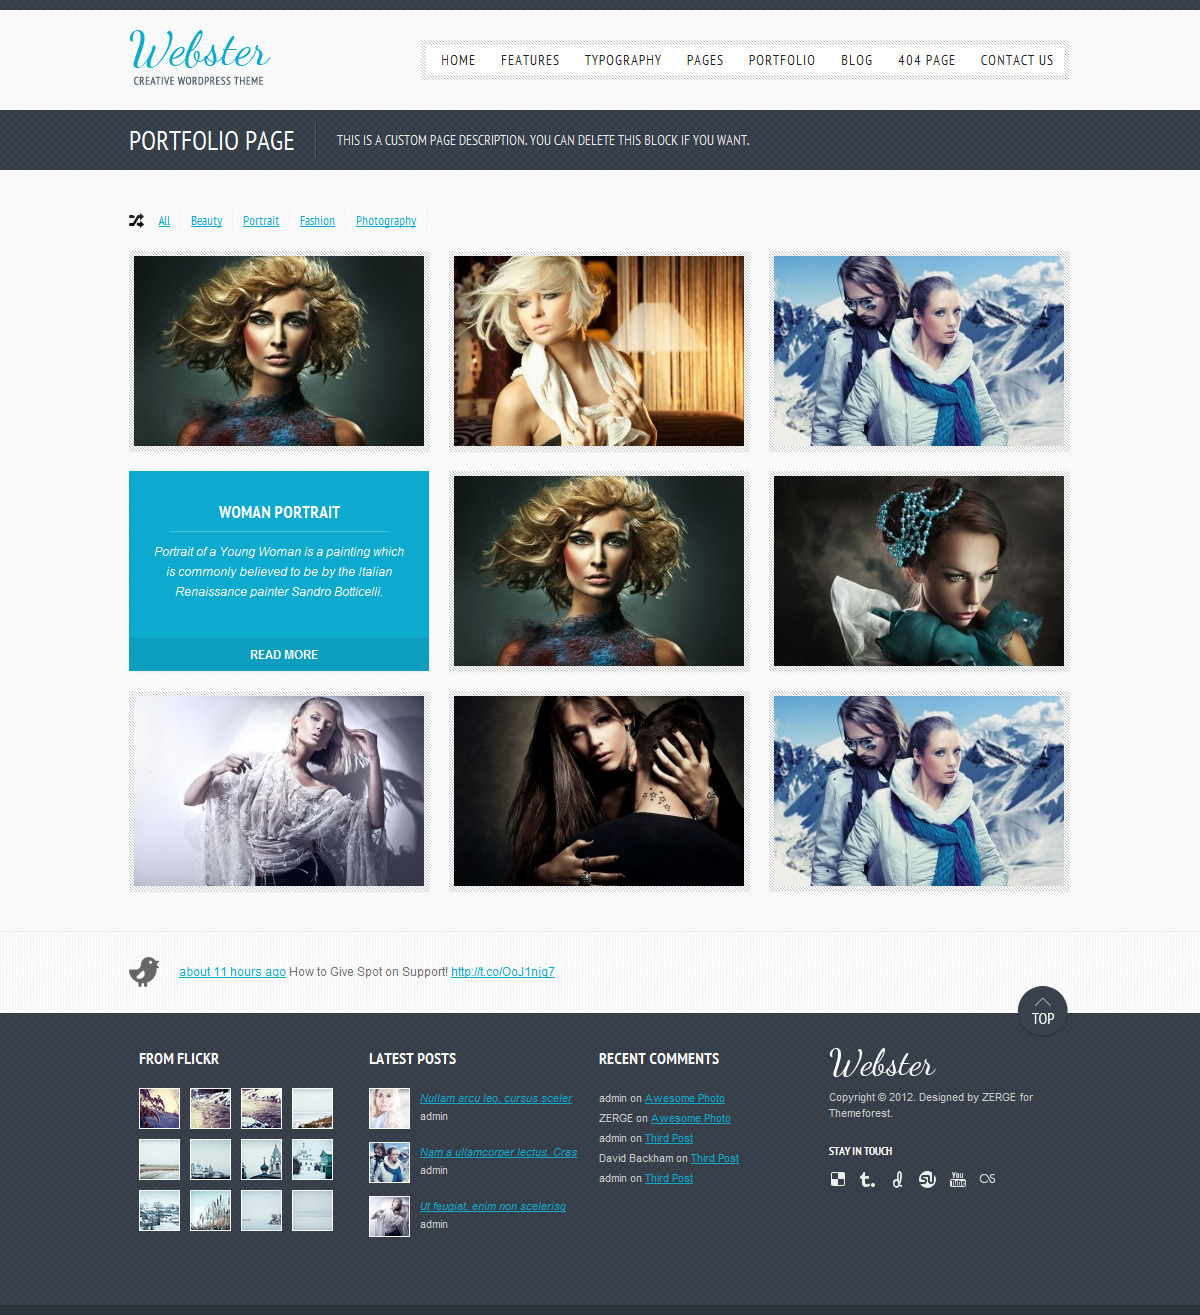 Webster - Creative WordPress Theme - Portfolio Style2